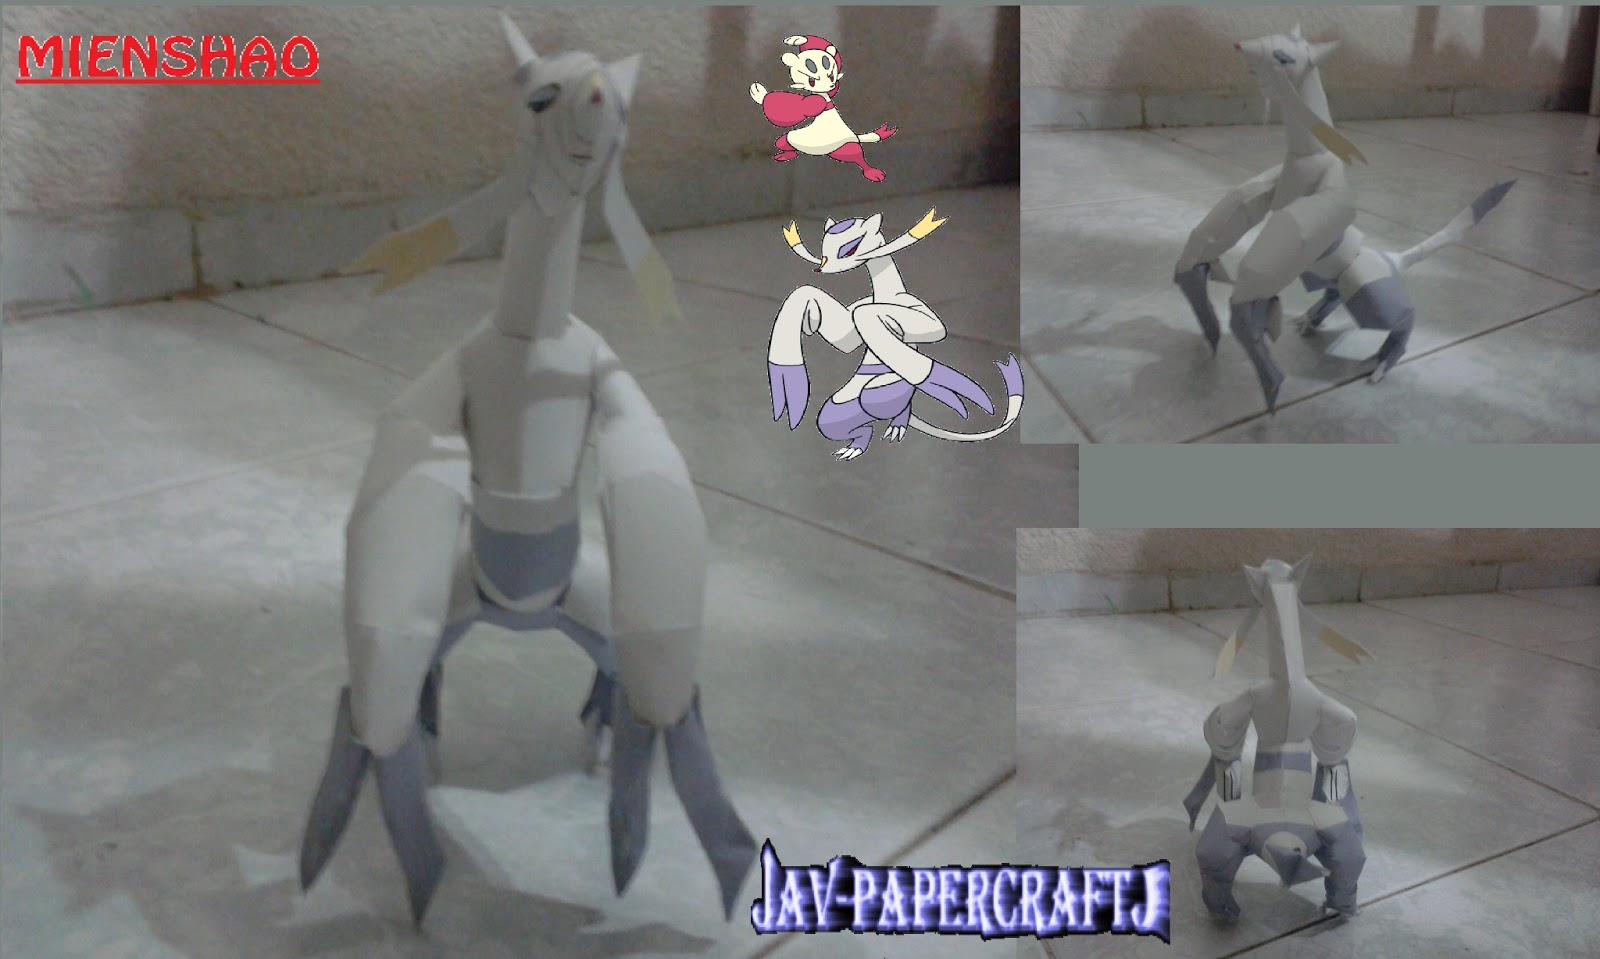 Pokemon Mienshao Papercraft